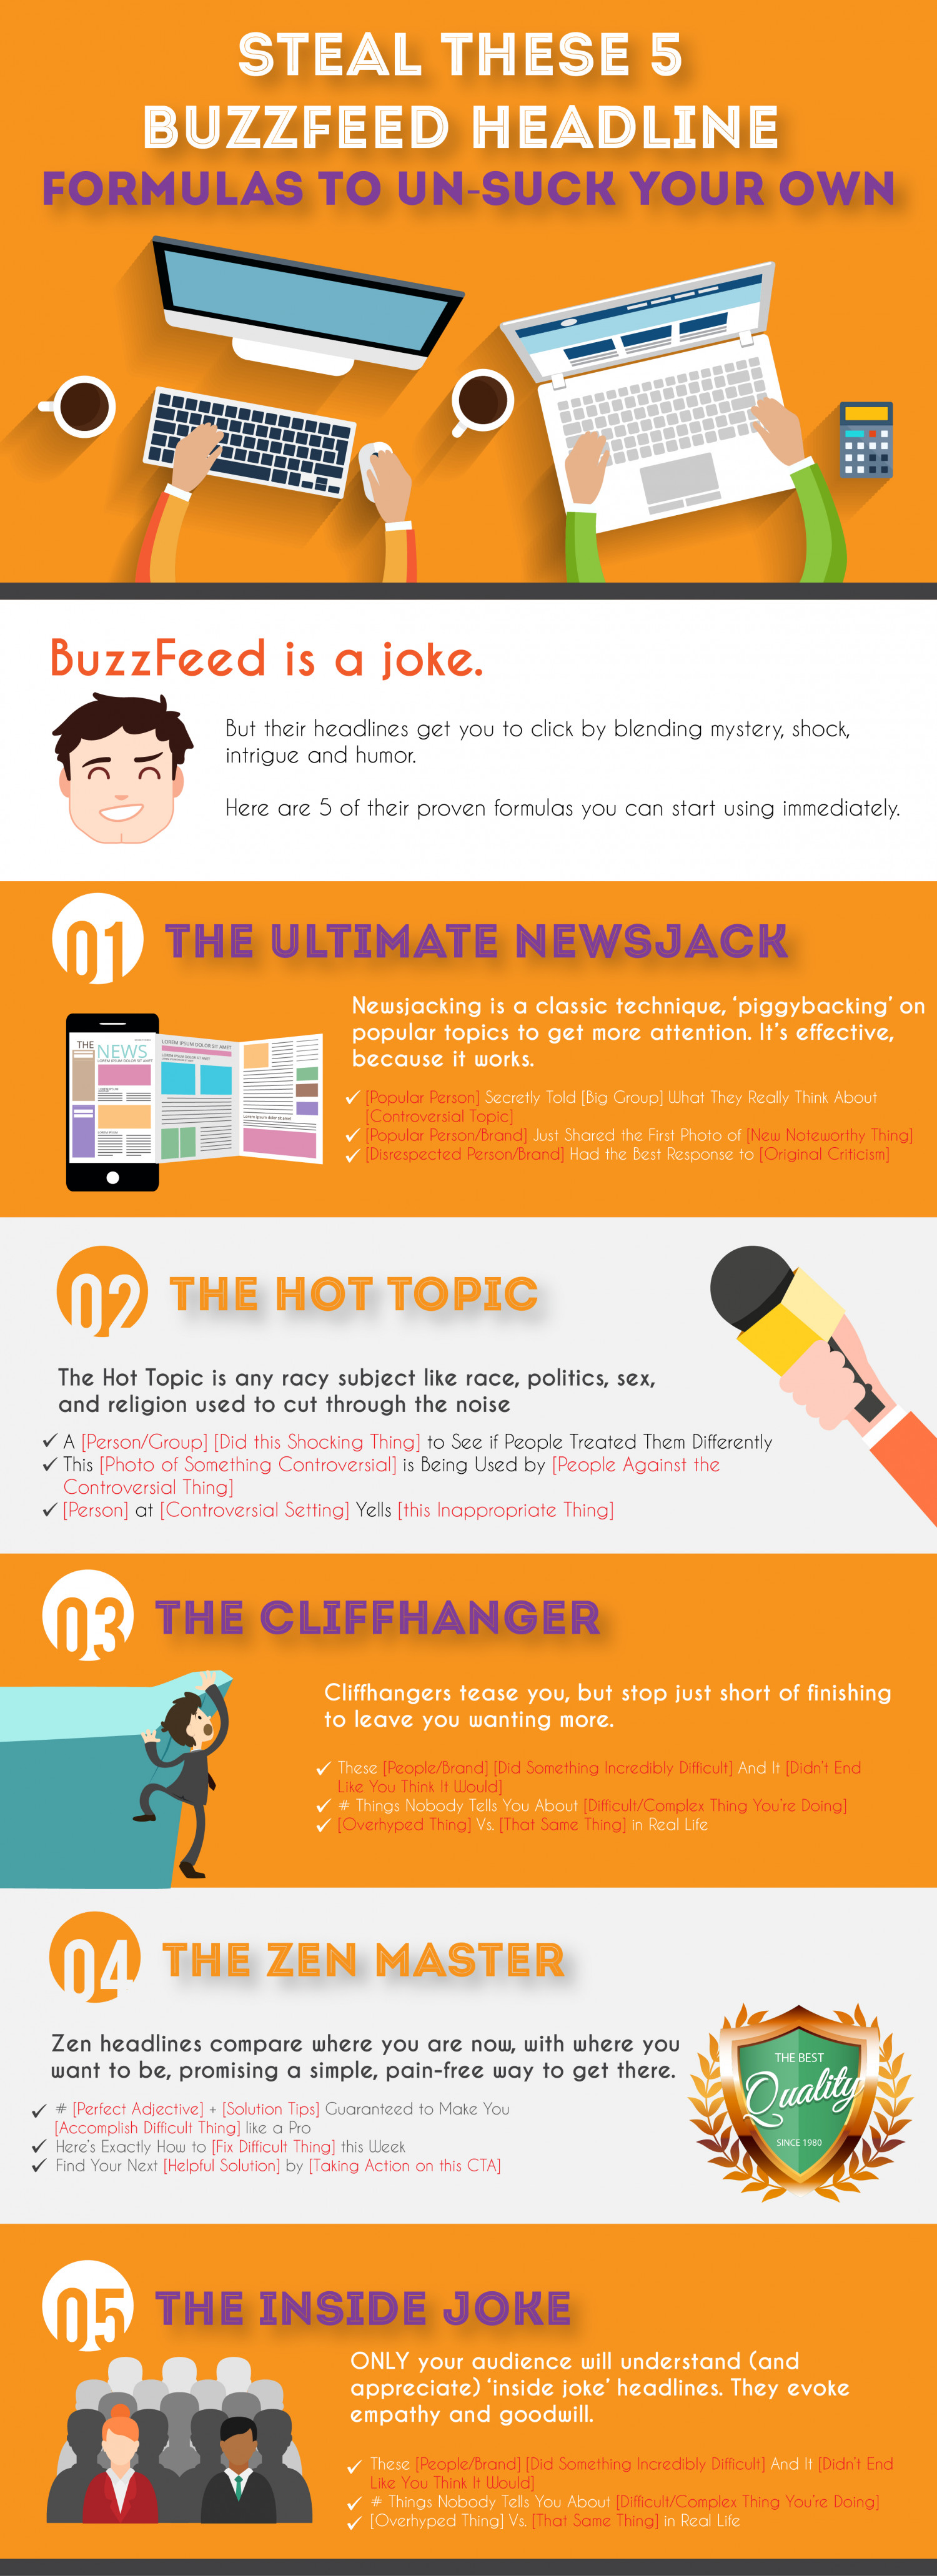 Steal these 5 Proven BuzzFeed Headline Formulas Infographic